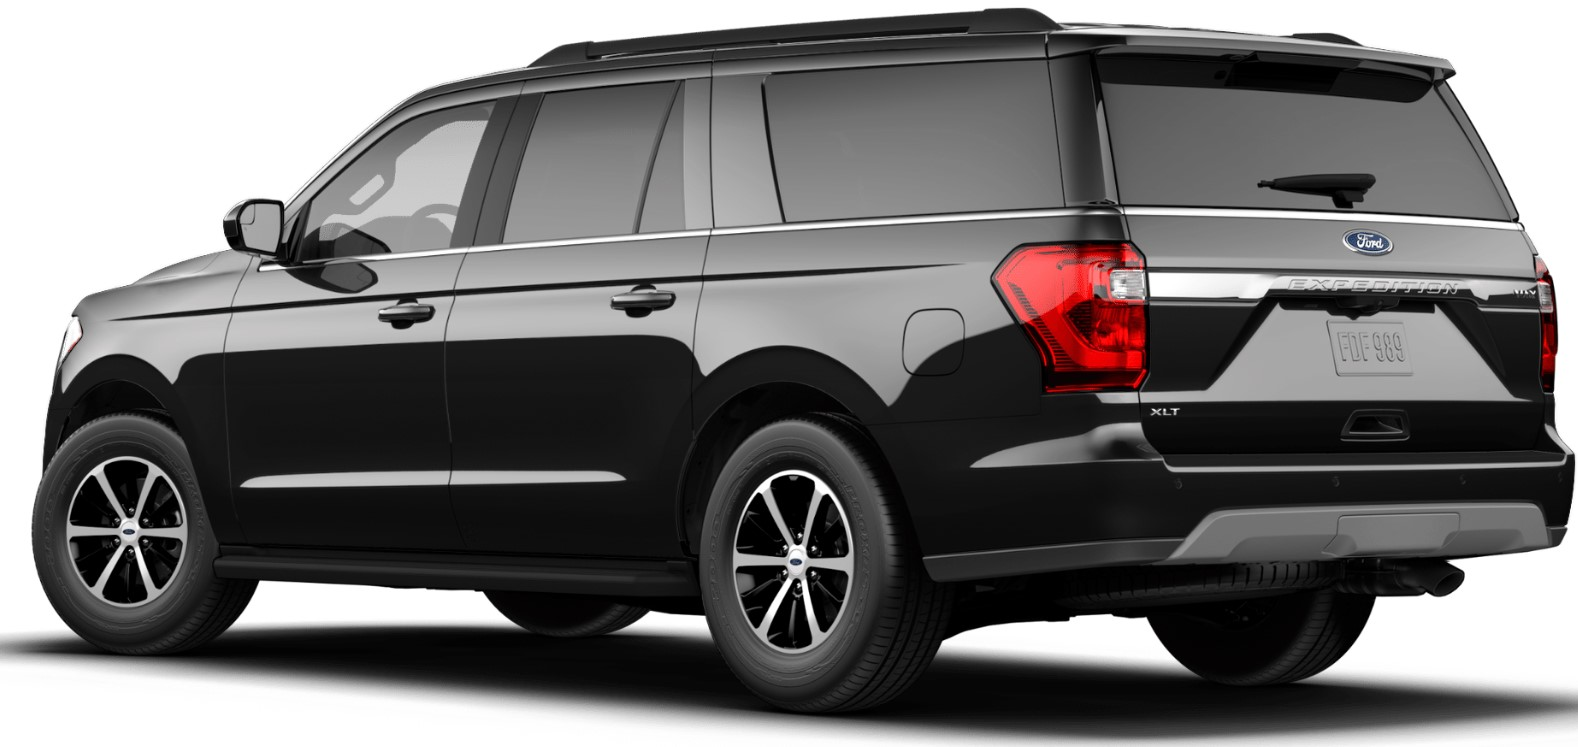 2019 Ford Expedition Max Rear Black Exterior